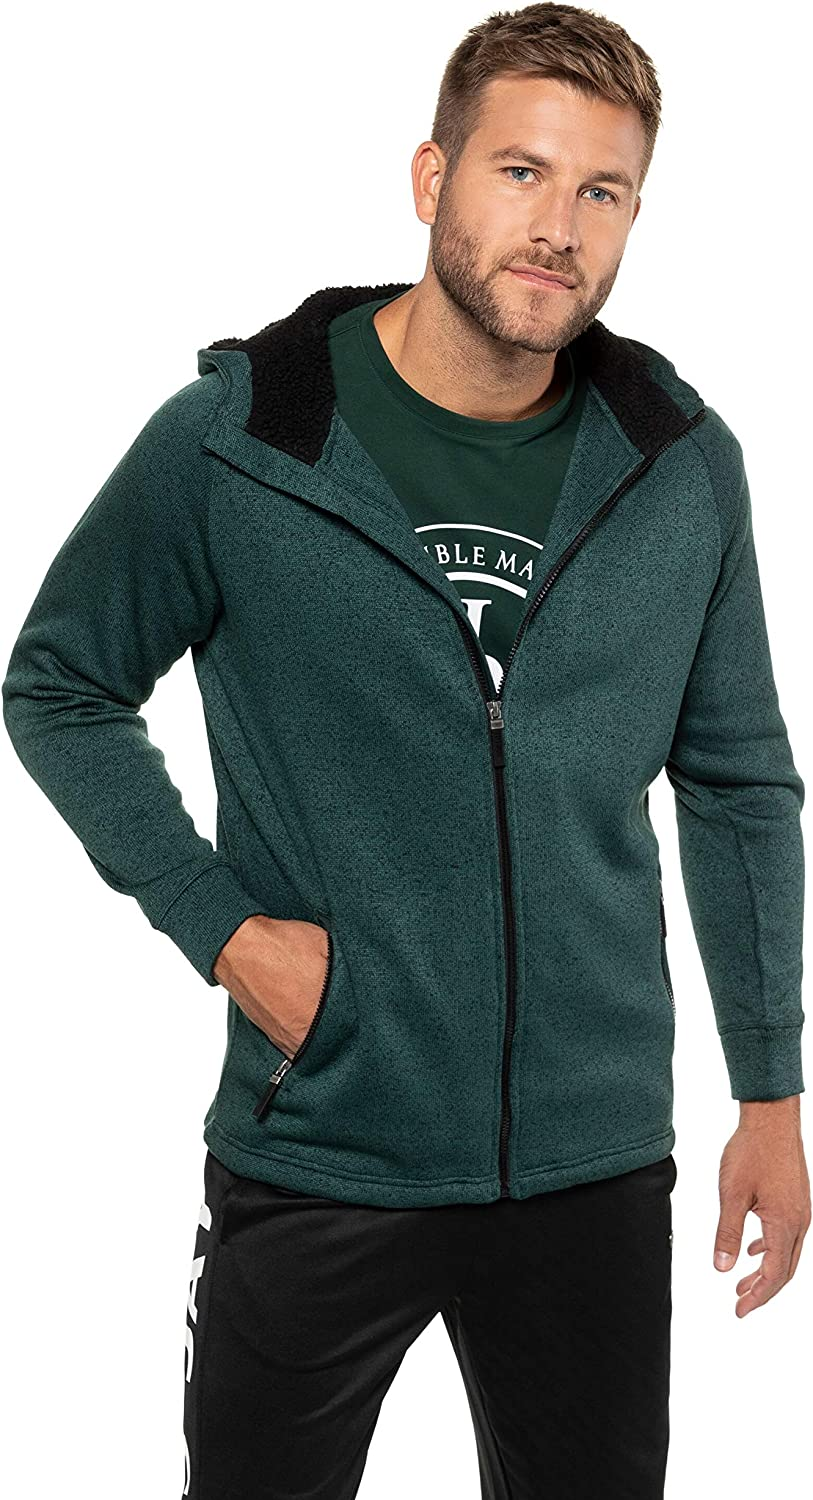 JP 1880 Homme Grandes Tailles Hoody Maille et Polaire 723298